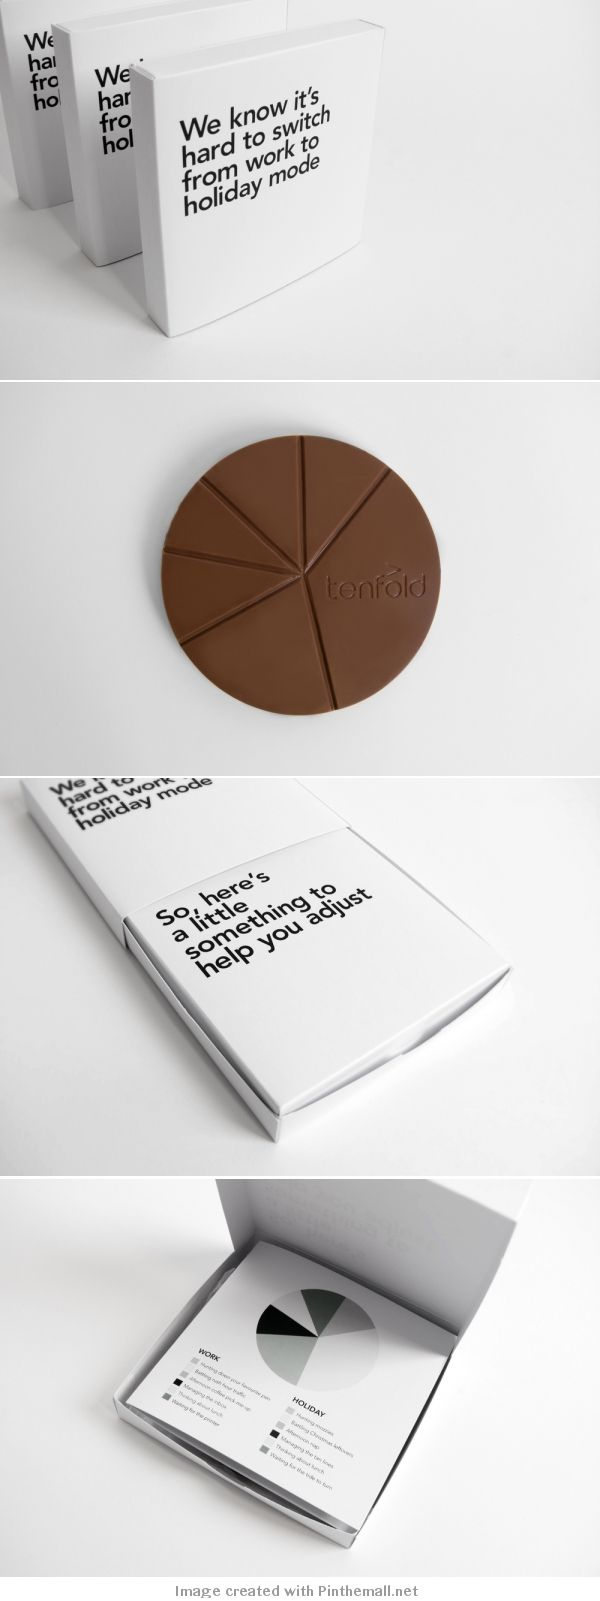 Tenfold Christmas Gift   Creative #gift #packaging #idea of New Zealand agency Tenfold Creative